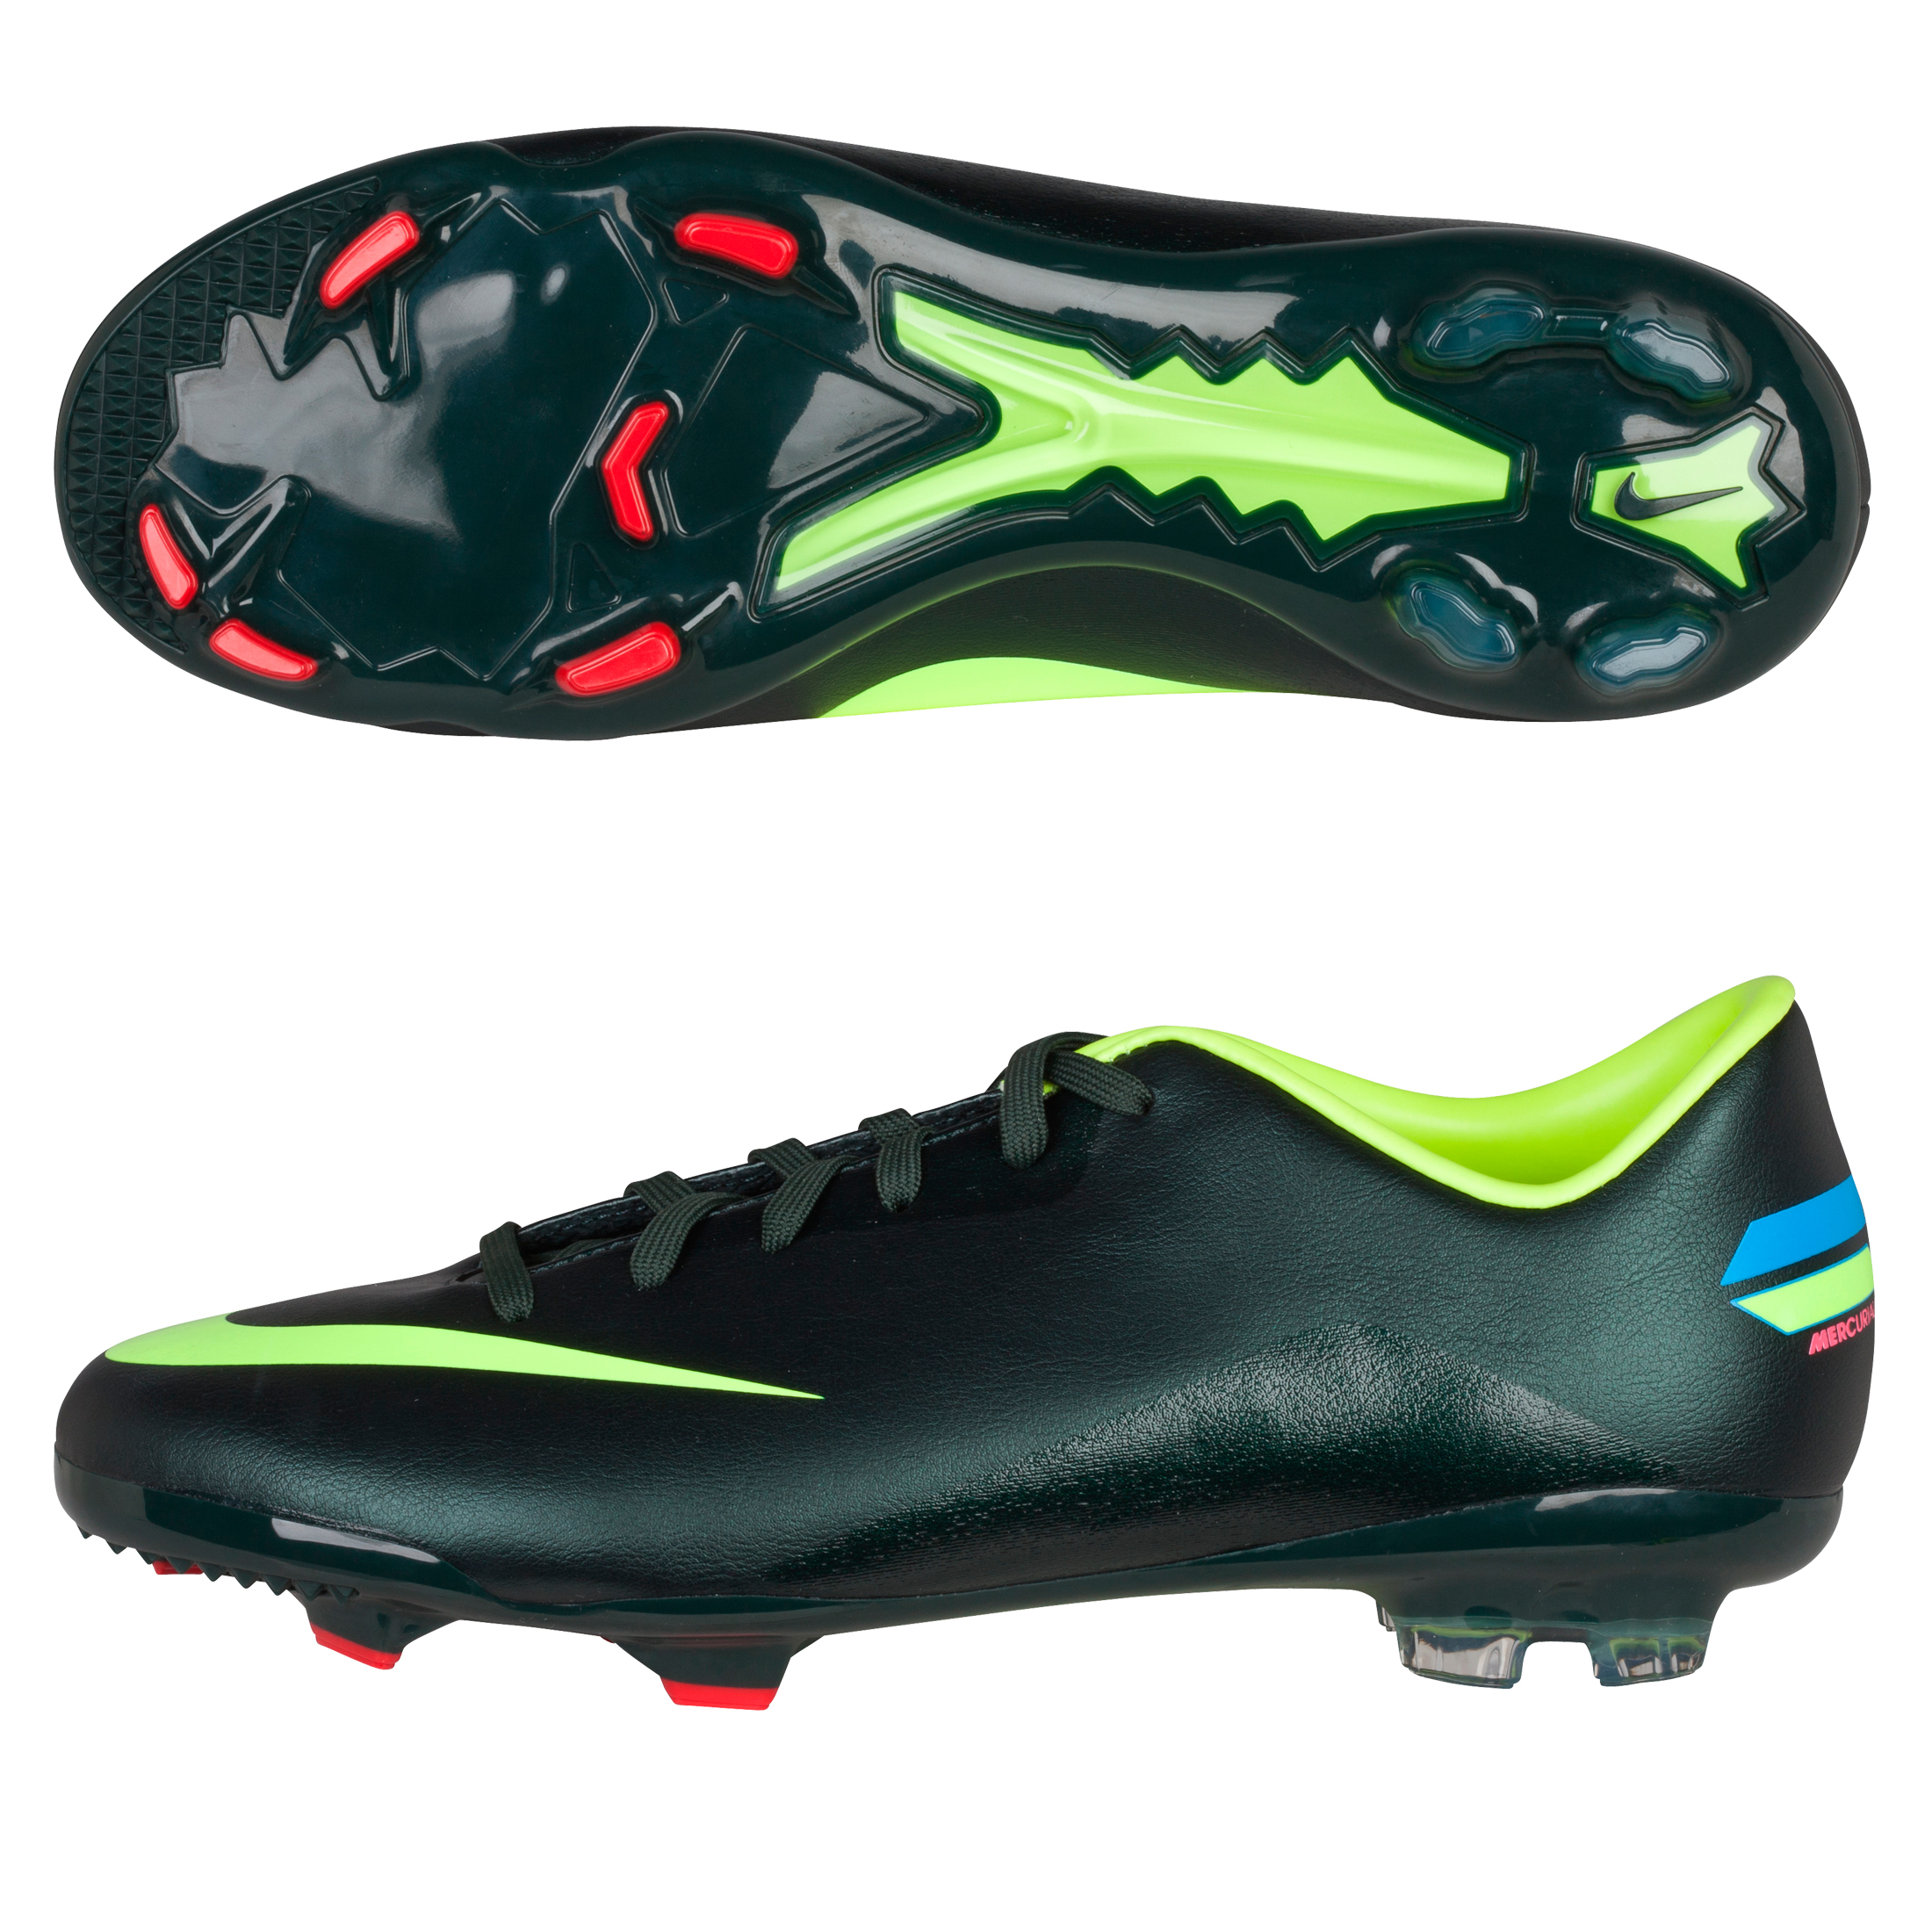 Nike Mercurial Glide III Firm ground Football Boots - Seaweed/Volt - Kids